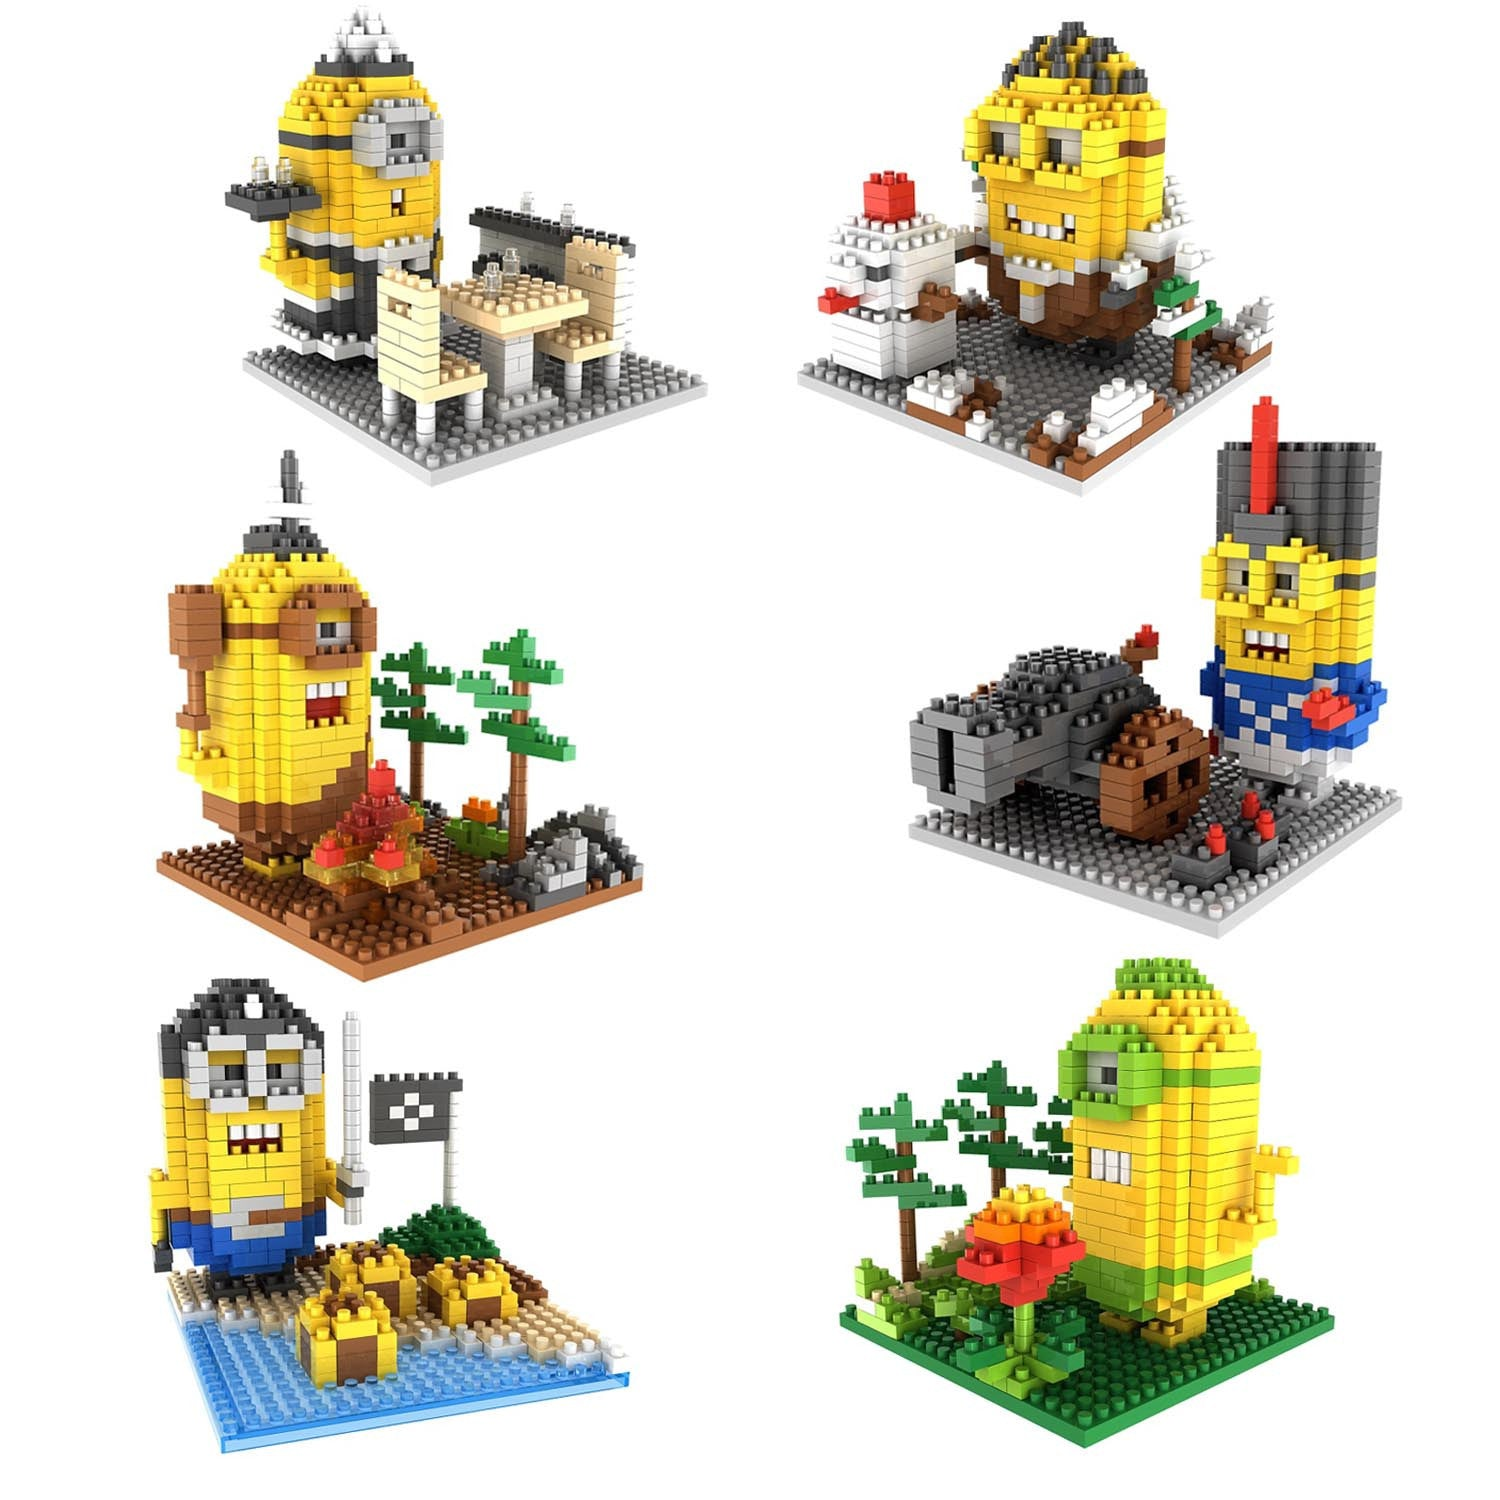 6-in-1 Combo Gift Pack of 2170 Pixel Blocks Toy Kids Bricks Craft (6x Little Yellow Guys) - RICCO® Toys